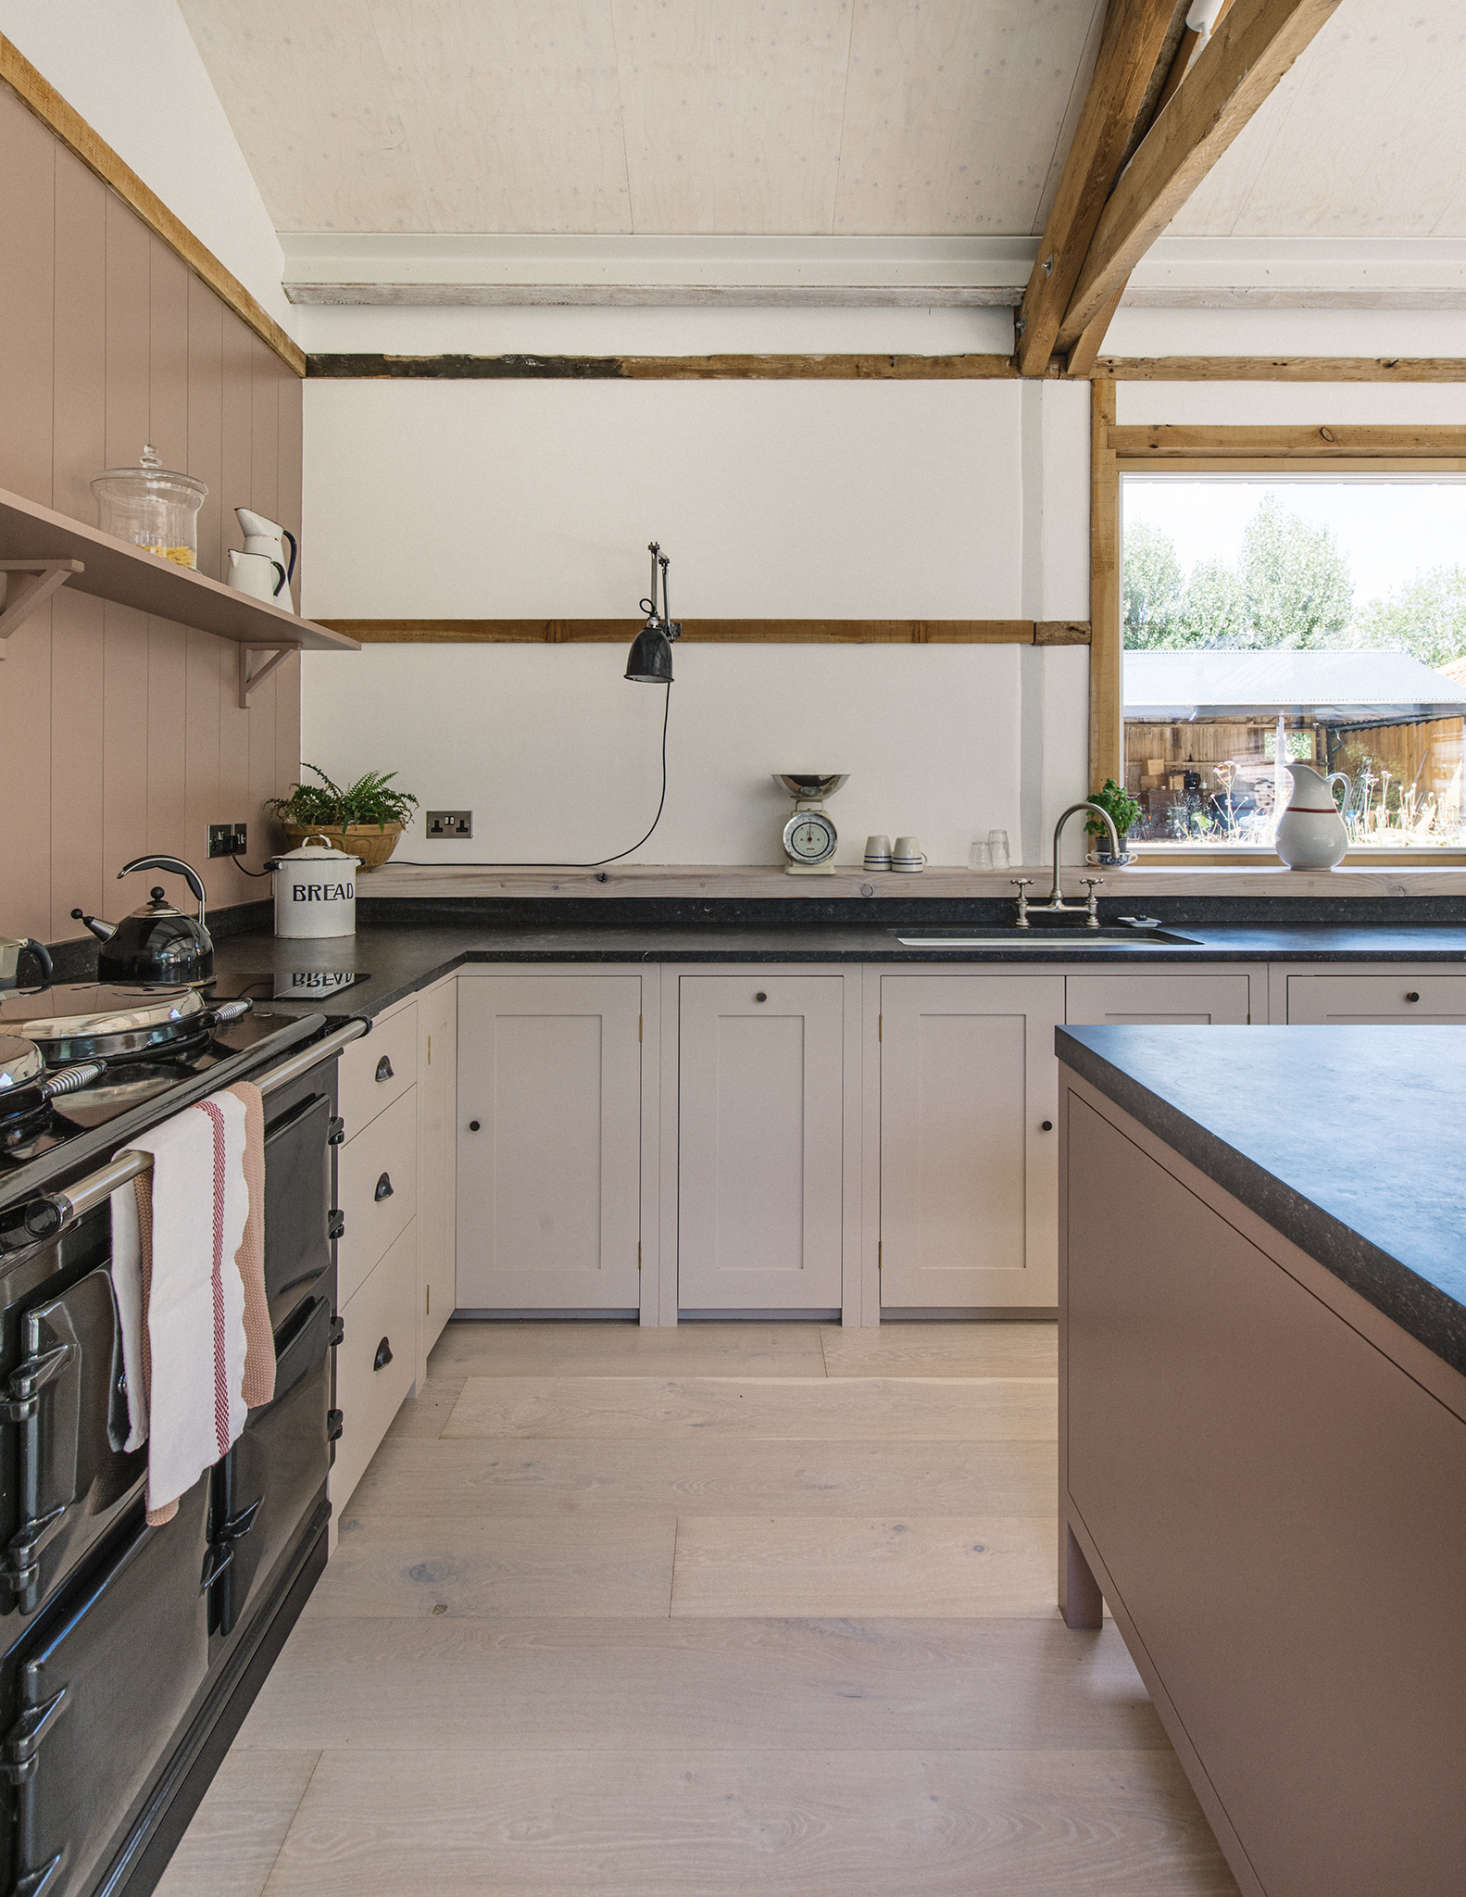 The owner loved her Aga cooker at the farmhouse and introduced Aga&#8